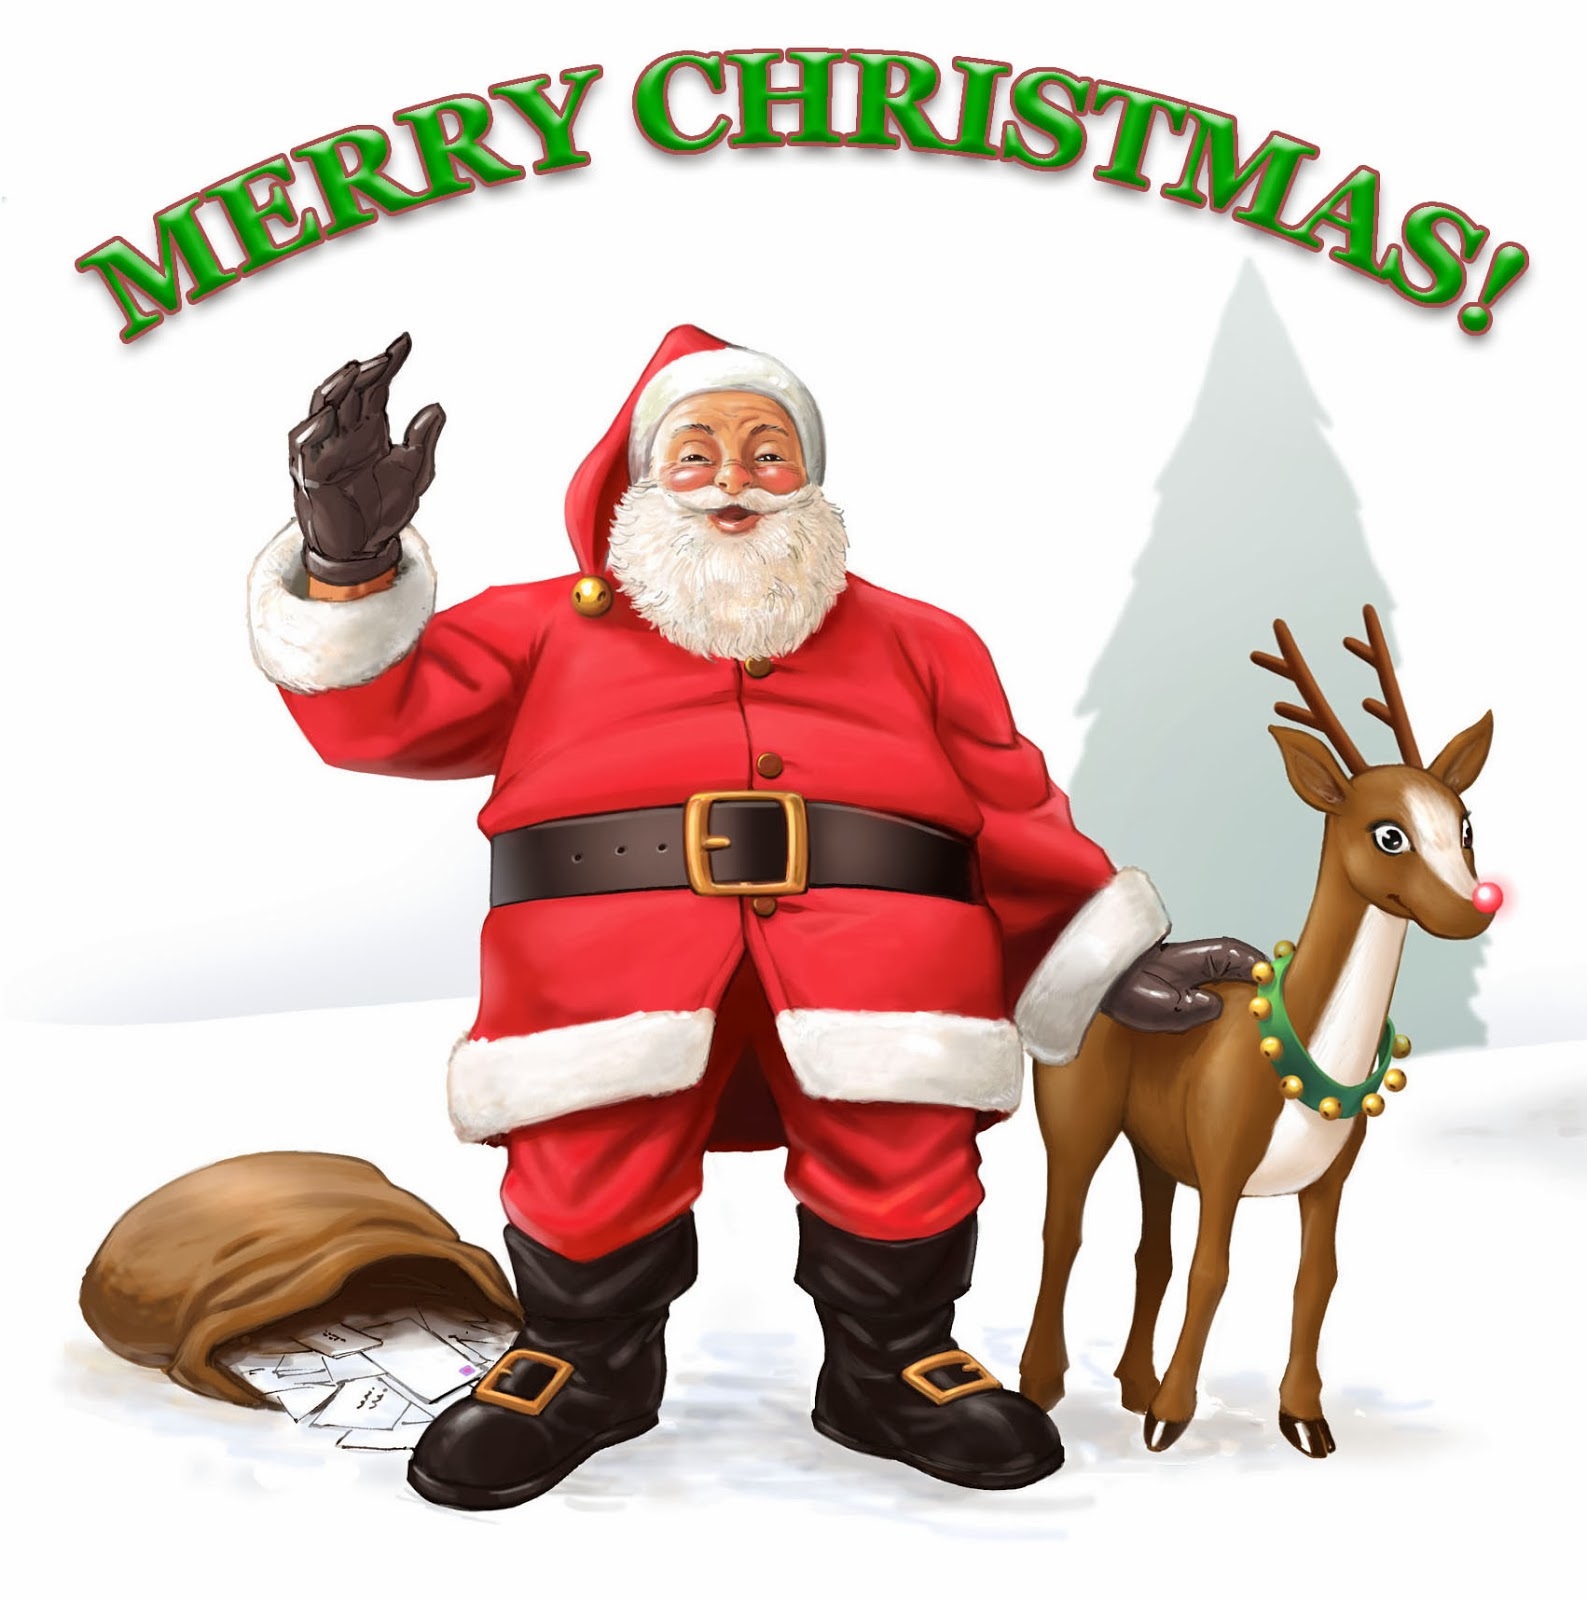 merry christmas images with santa top10 wallpapers 4u christmas wallpapers